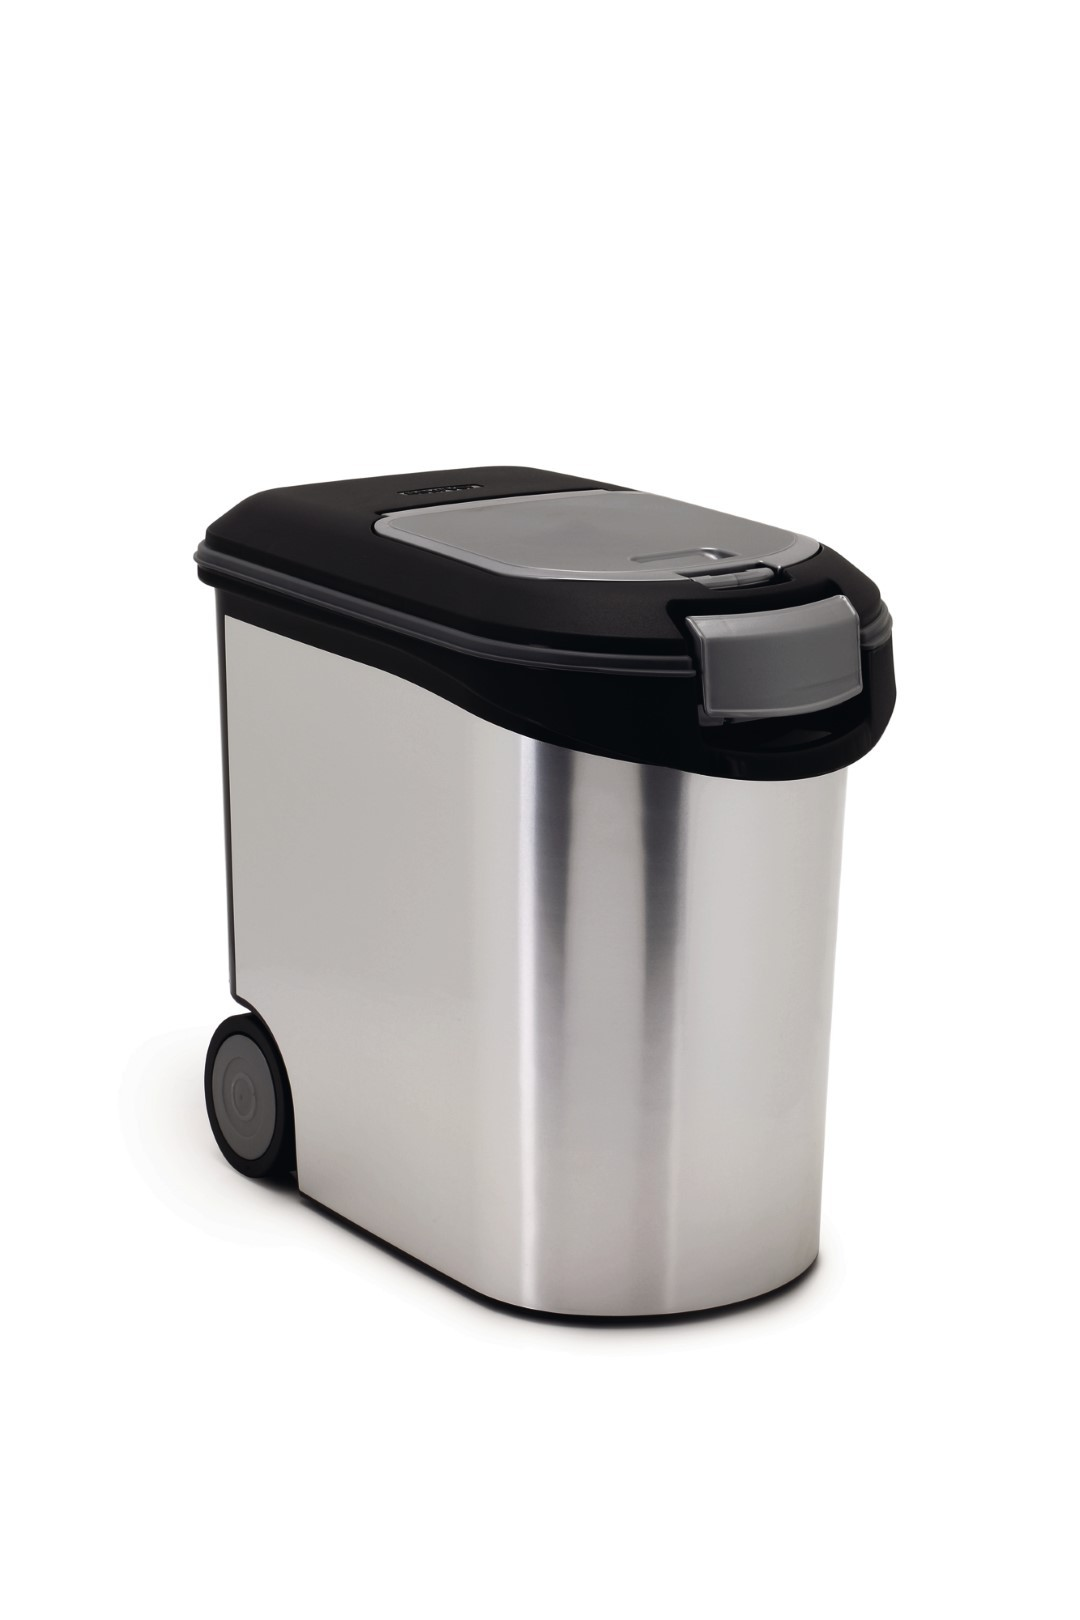 Voedselcontainer metallic 35ltr